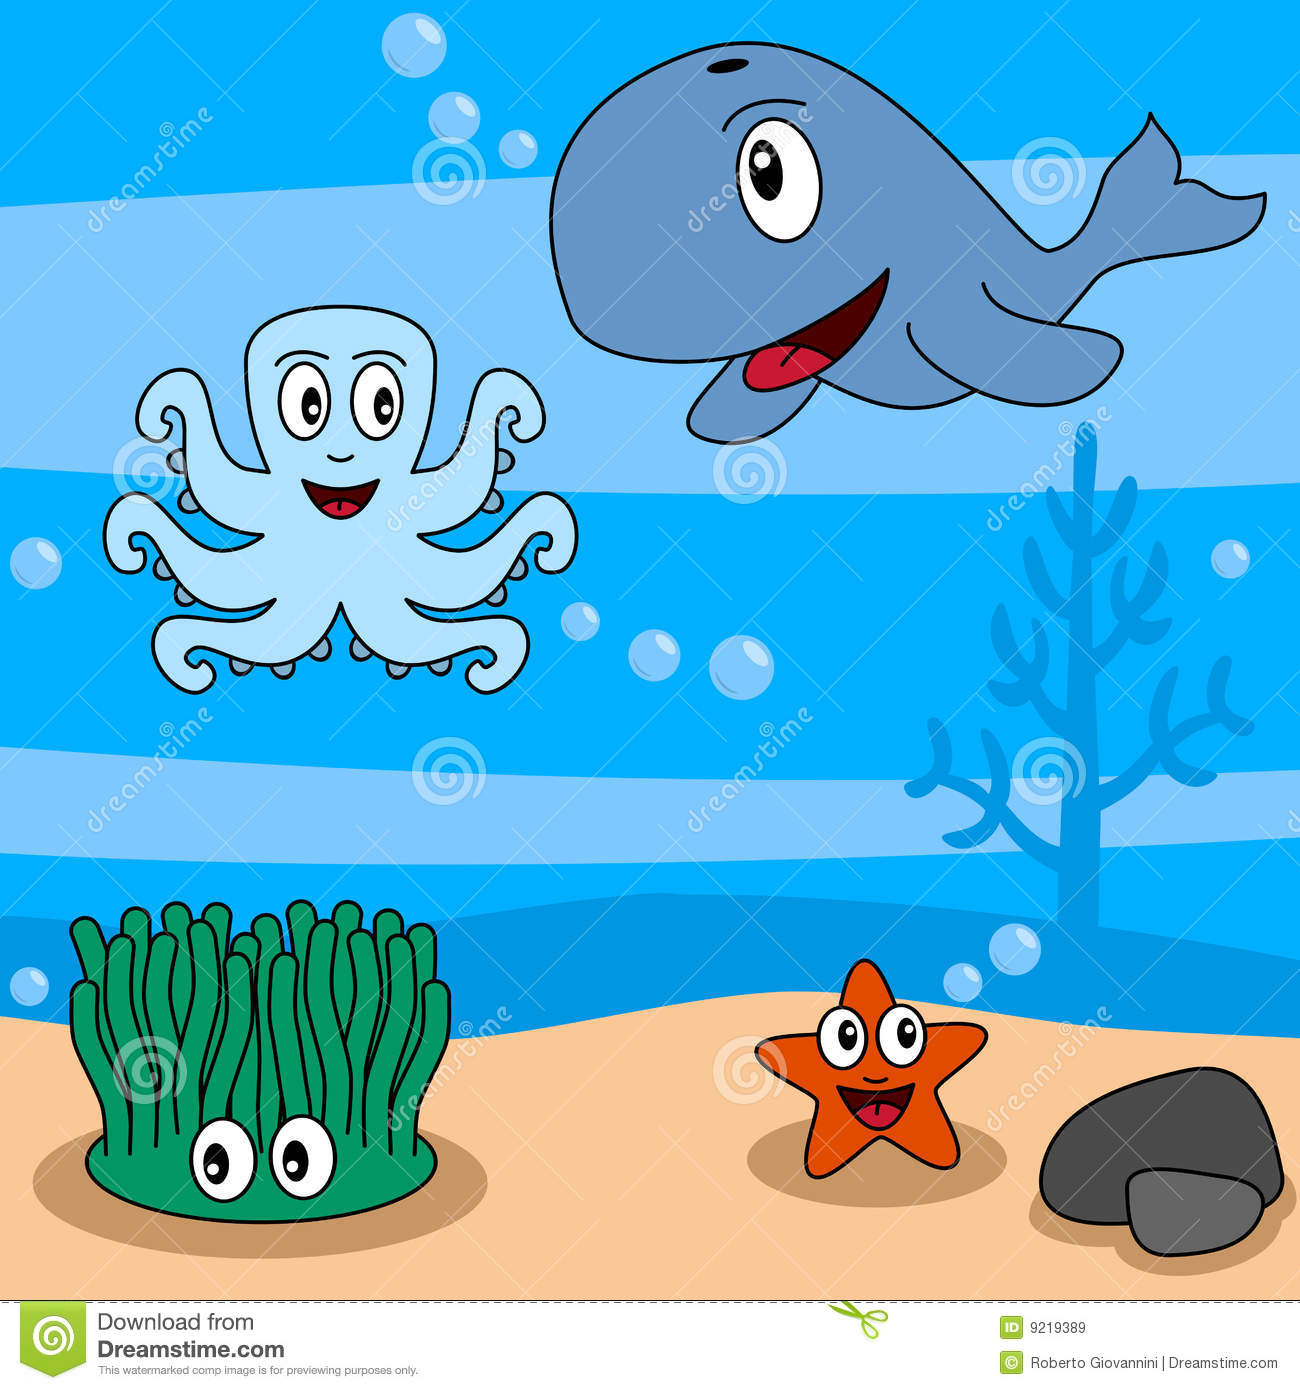 Gallery For > Under Ocean Scenery Clipart.